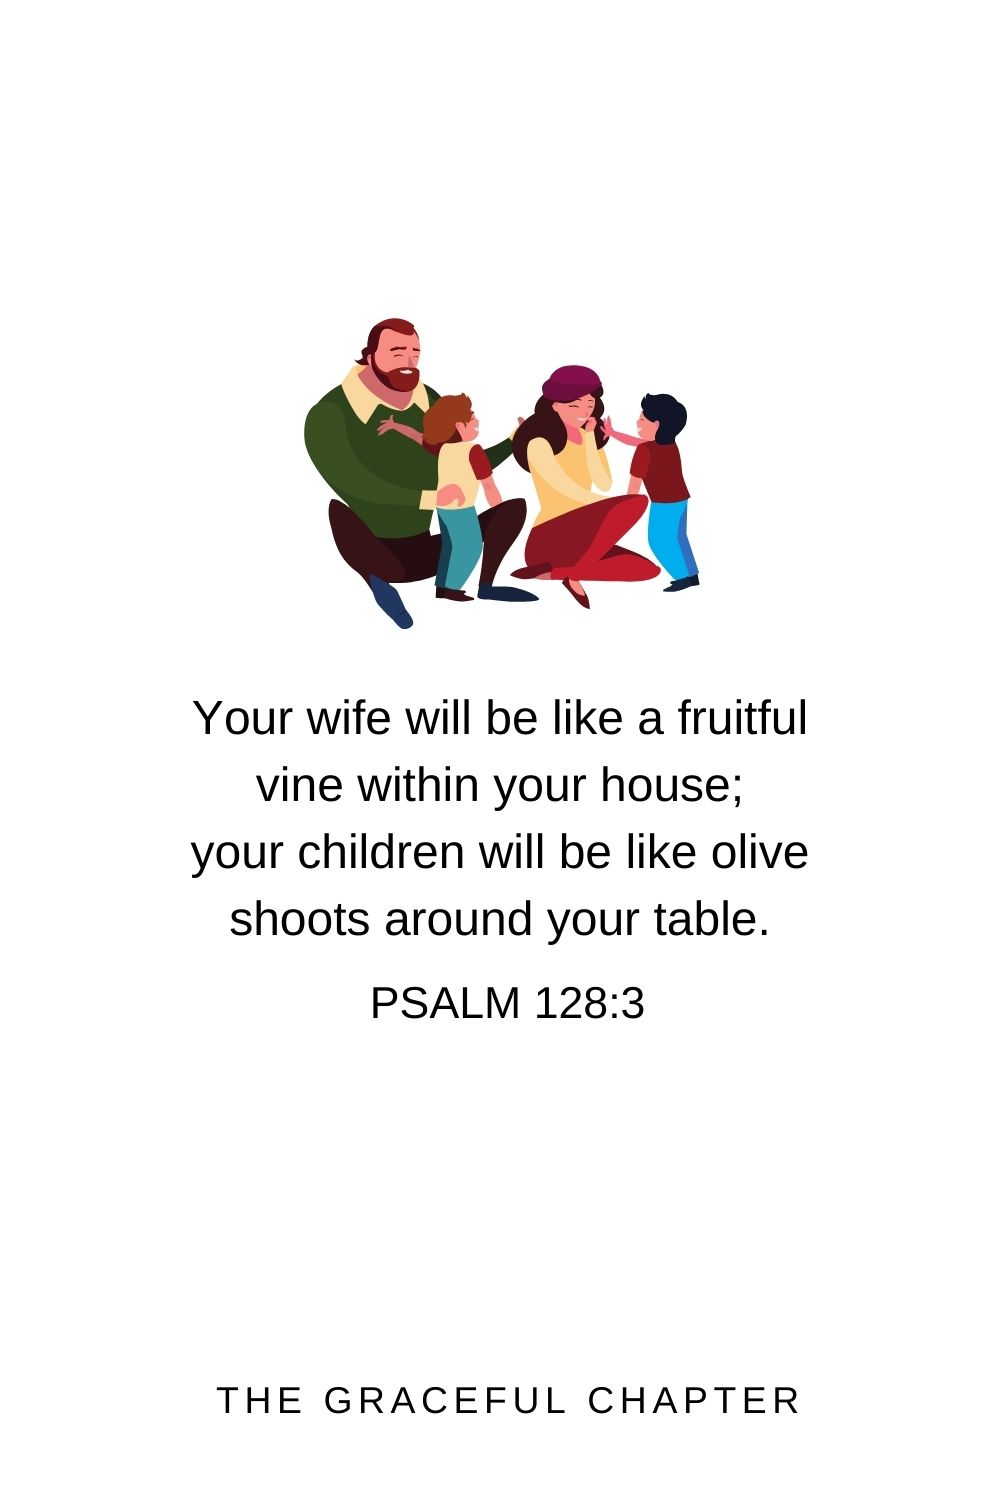 Your wife will be like a fruitful vine within your house; your children will be like olive shoots around your table. Psalm 128:3